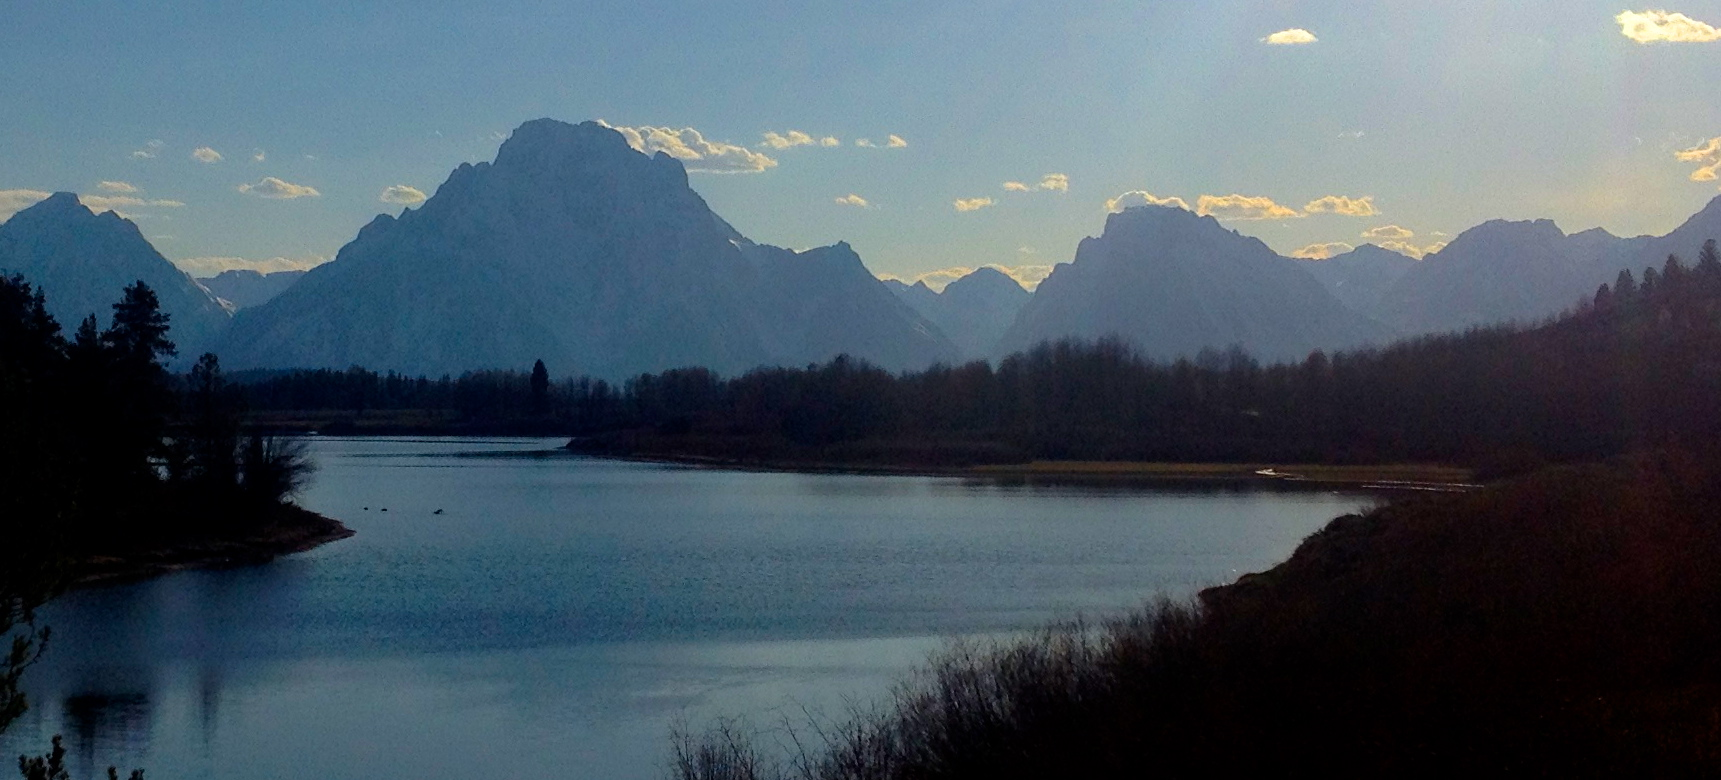 Sunset on Oxbow Bend, Grand Teton National Park